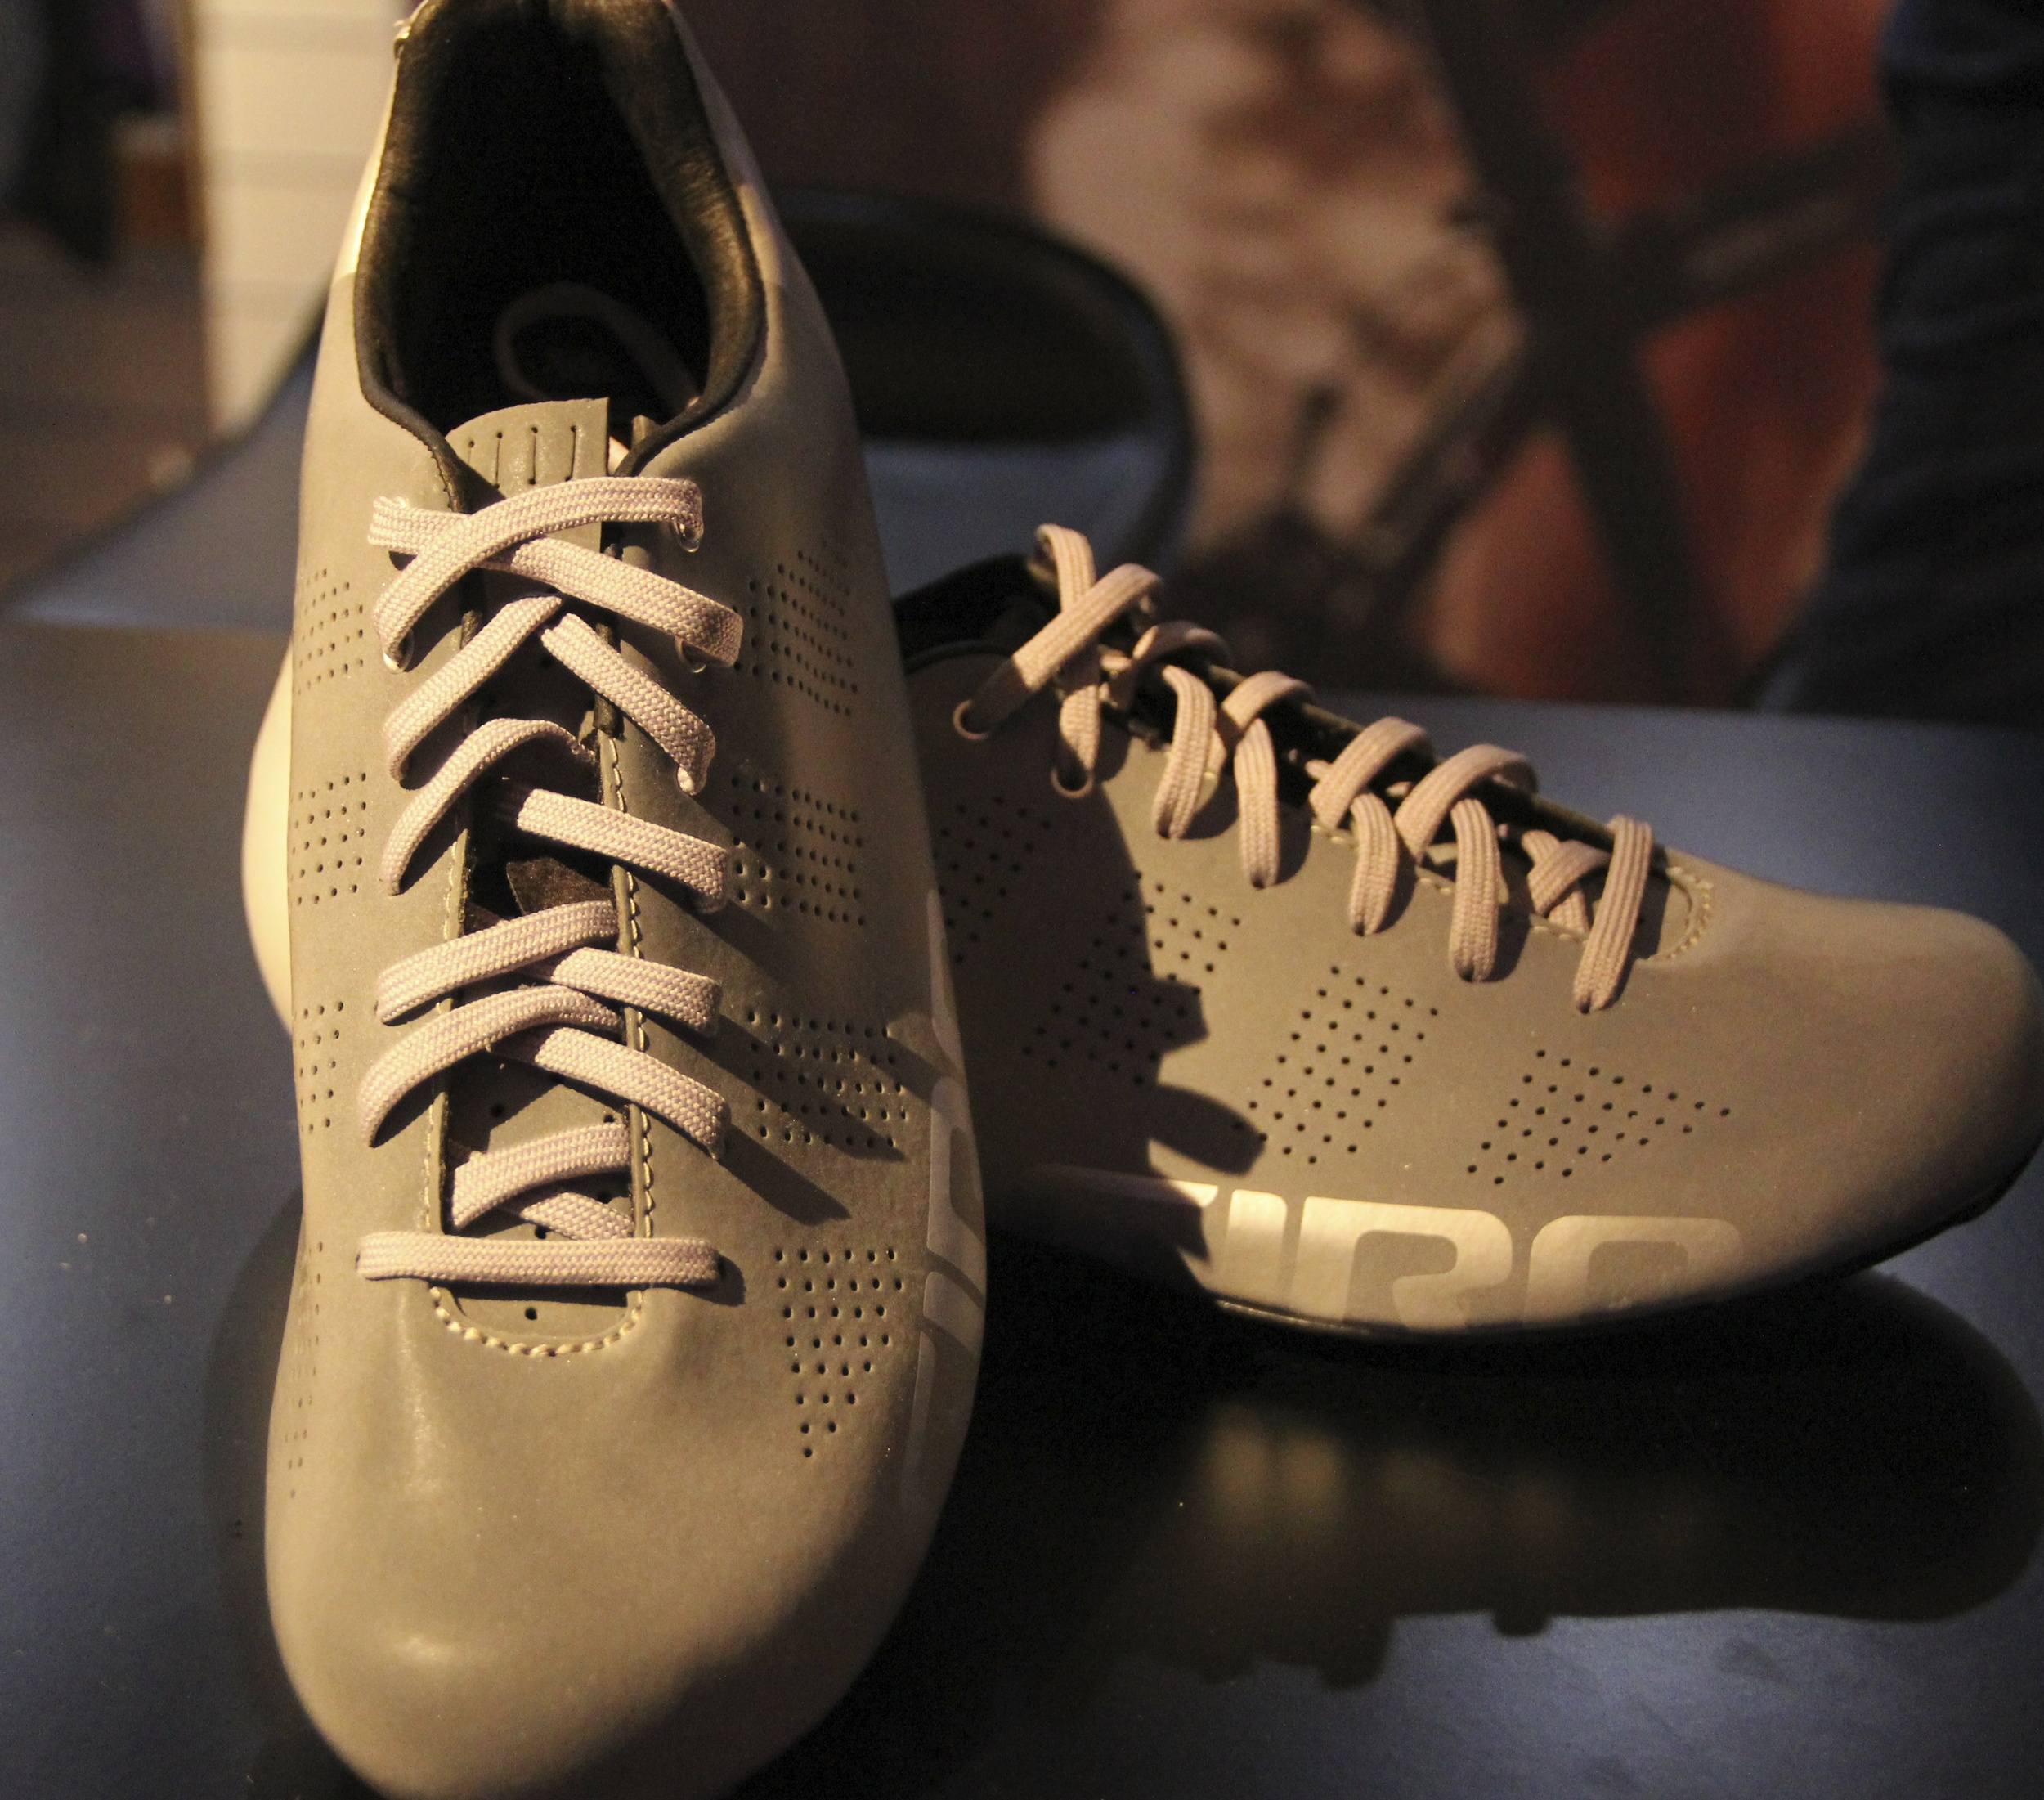 Giro reflective shoes